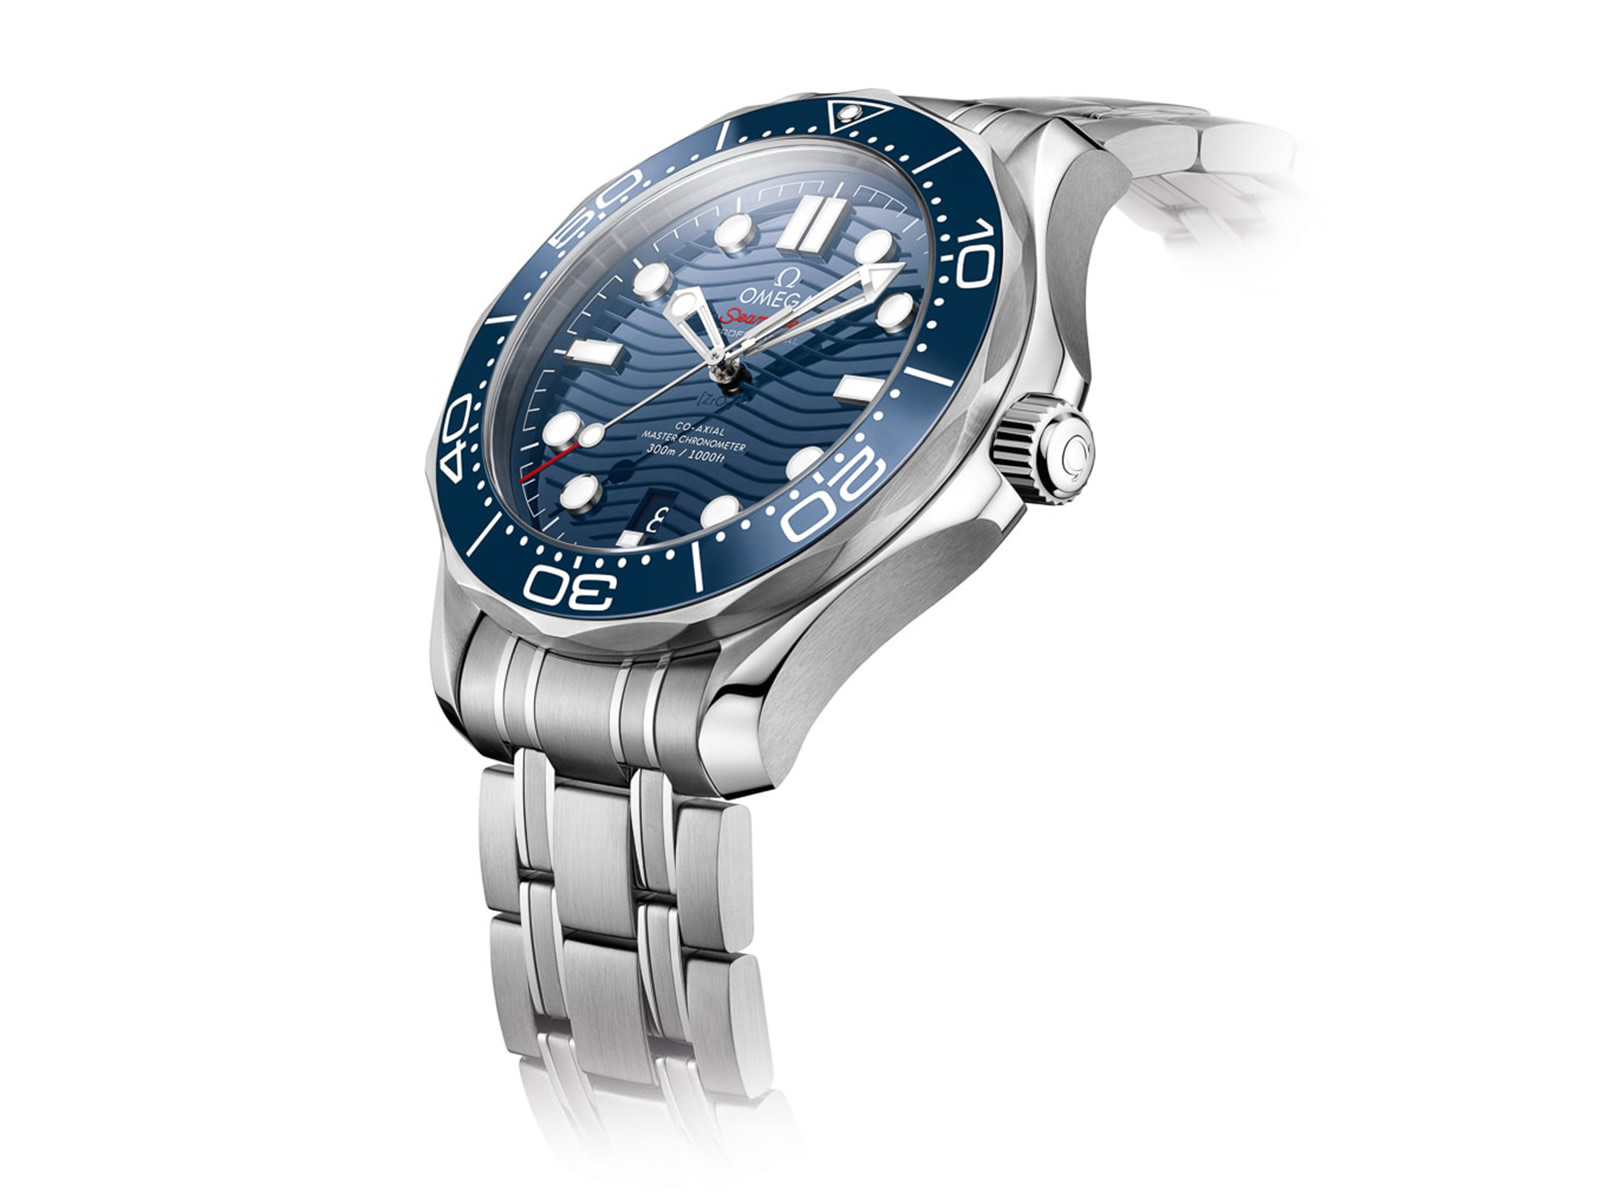 210-30-42-20-03-001-omega-seamaster-diver-300m-collection-4-.jpg